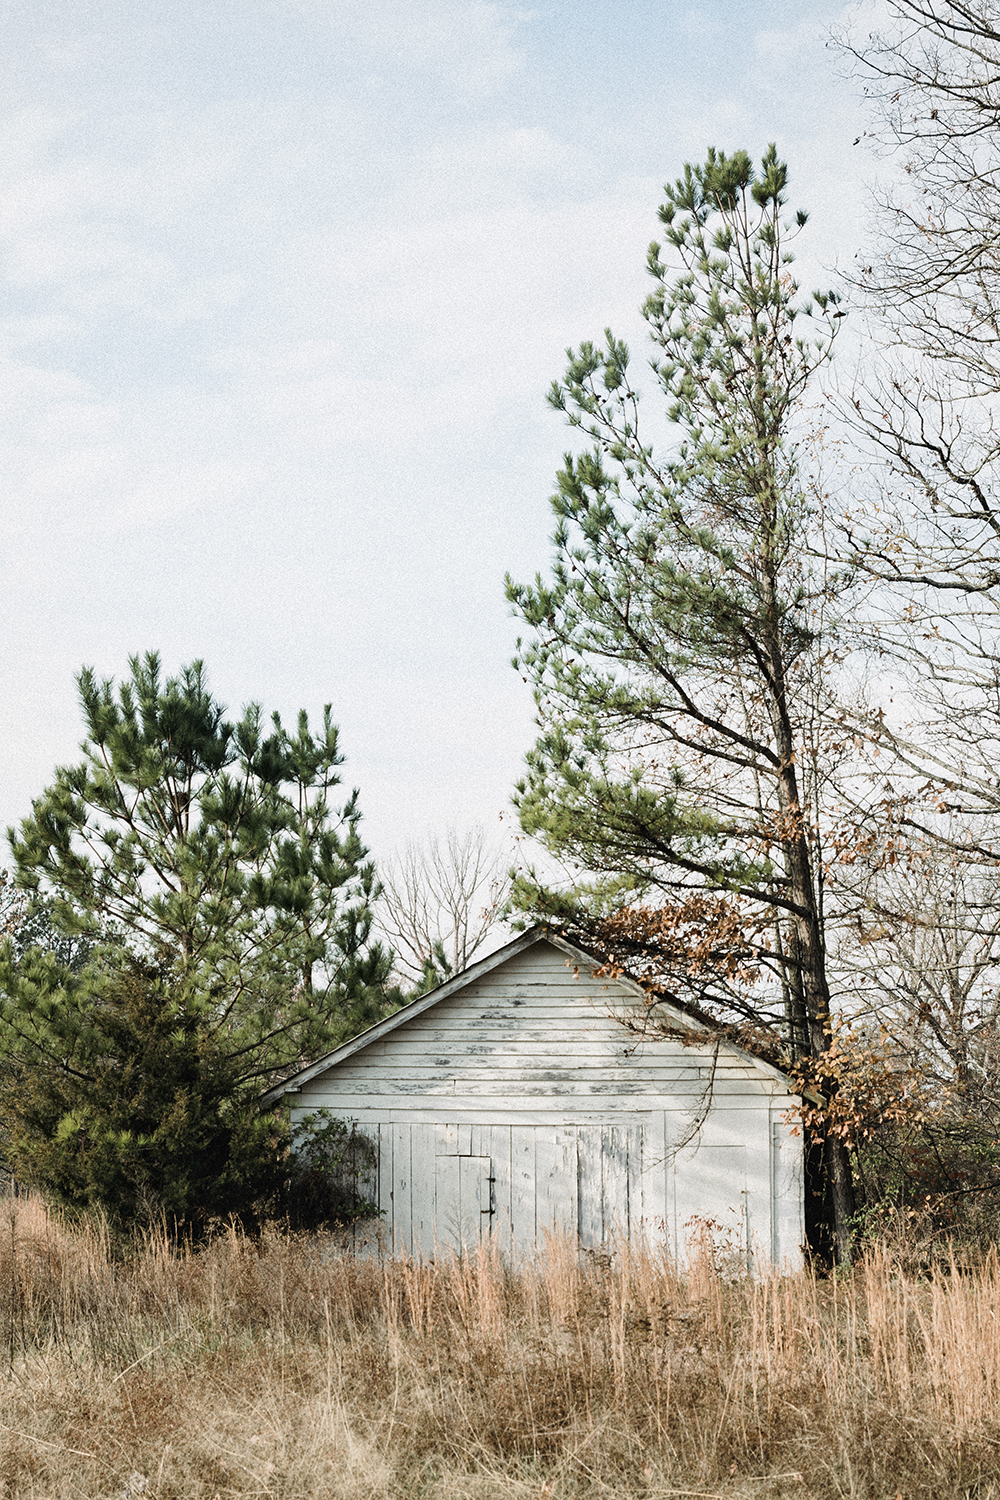 Shed_surrounded_trees_0003.jpg